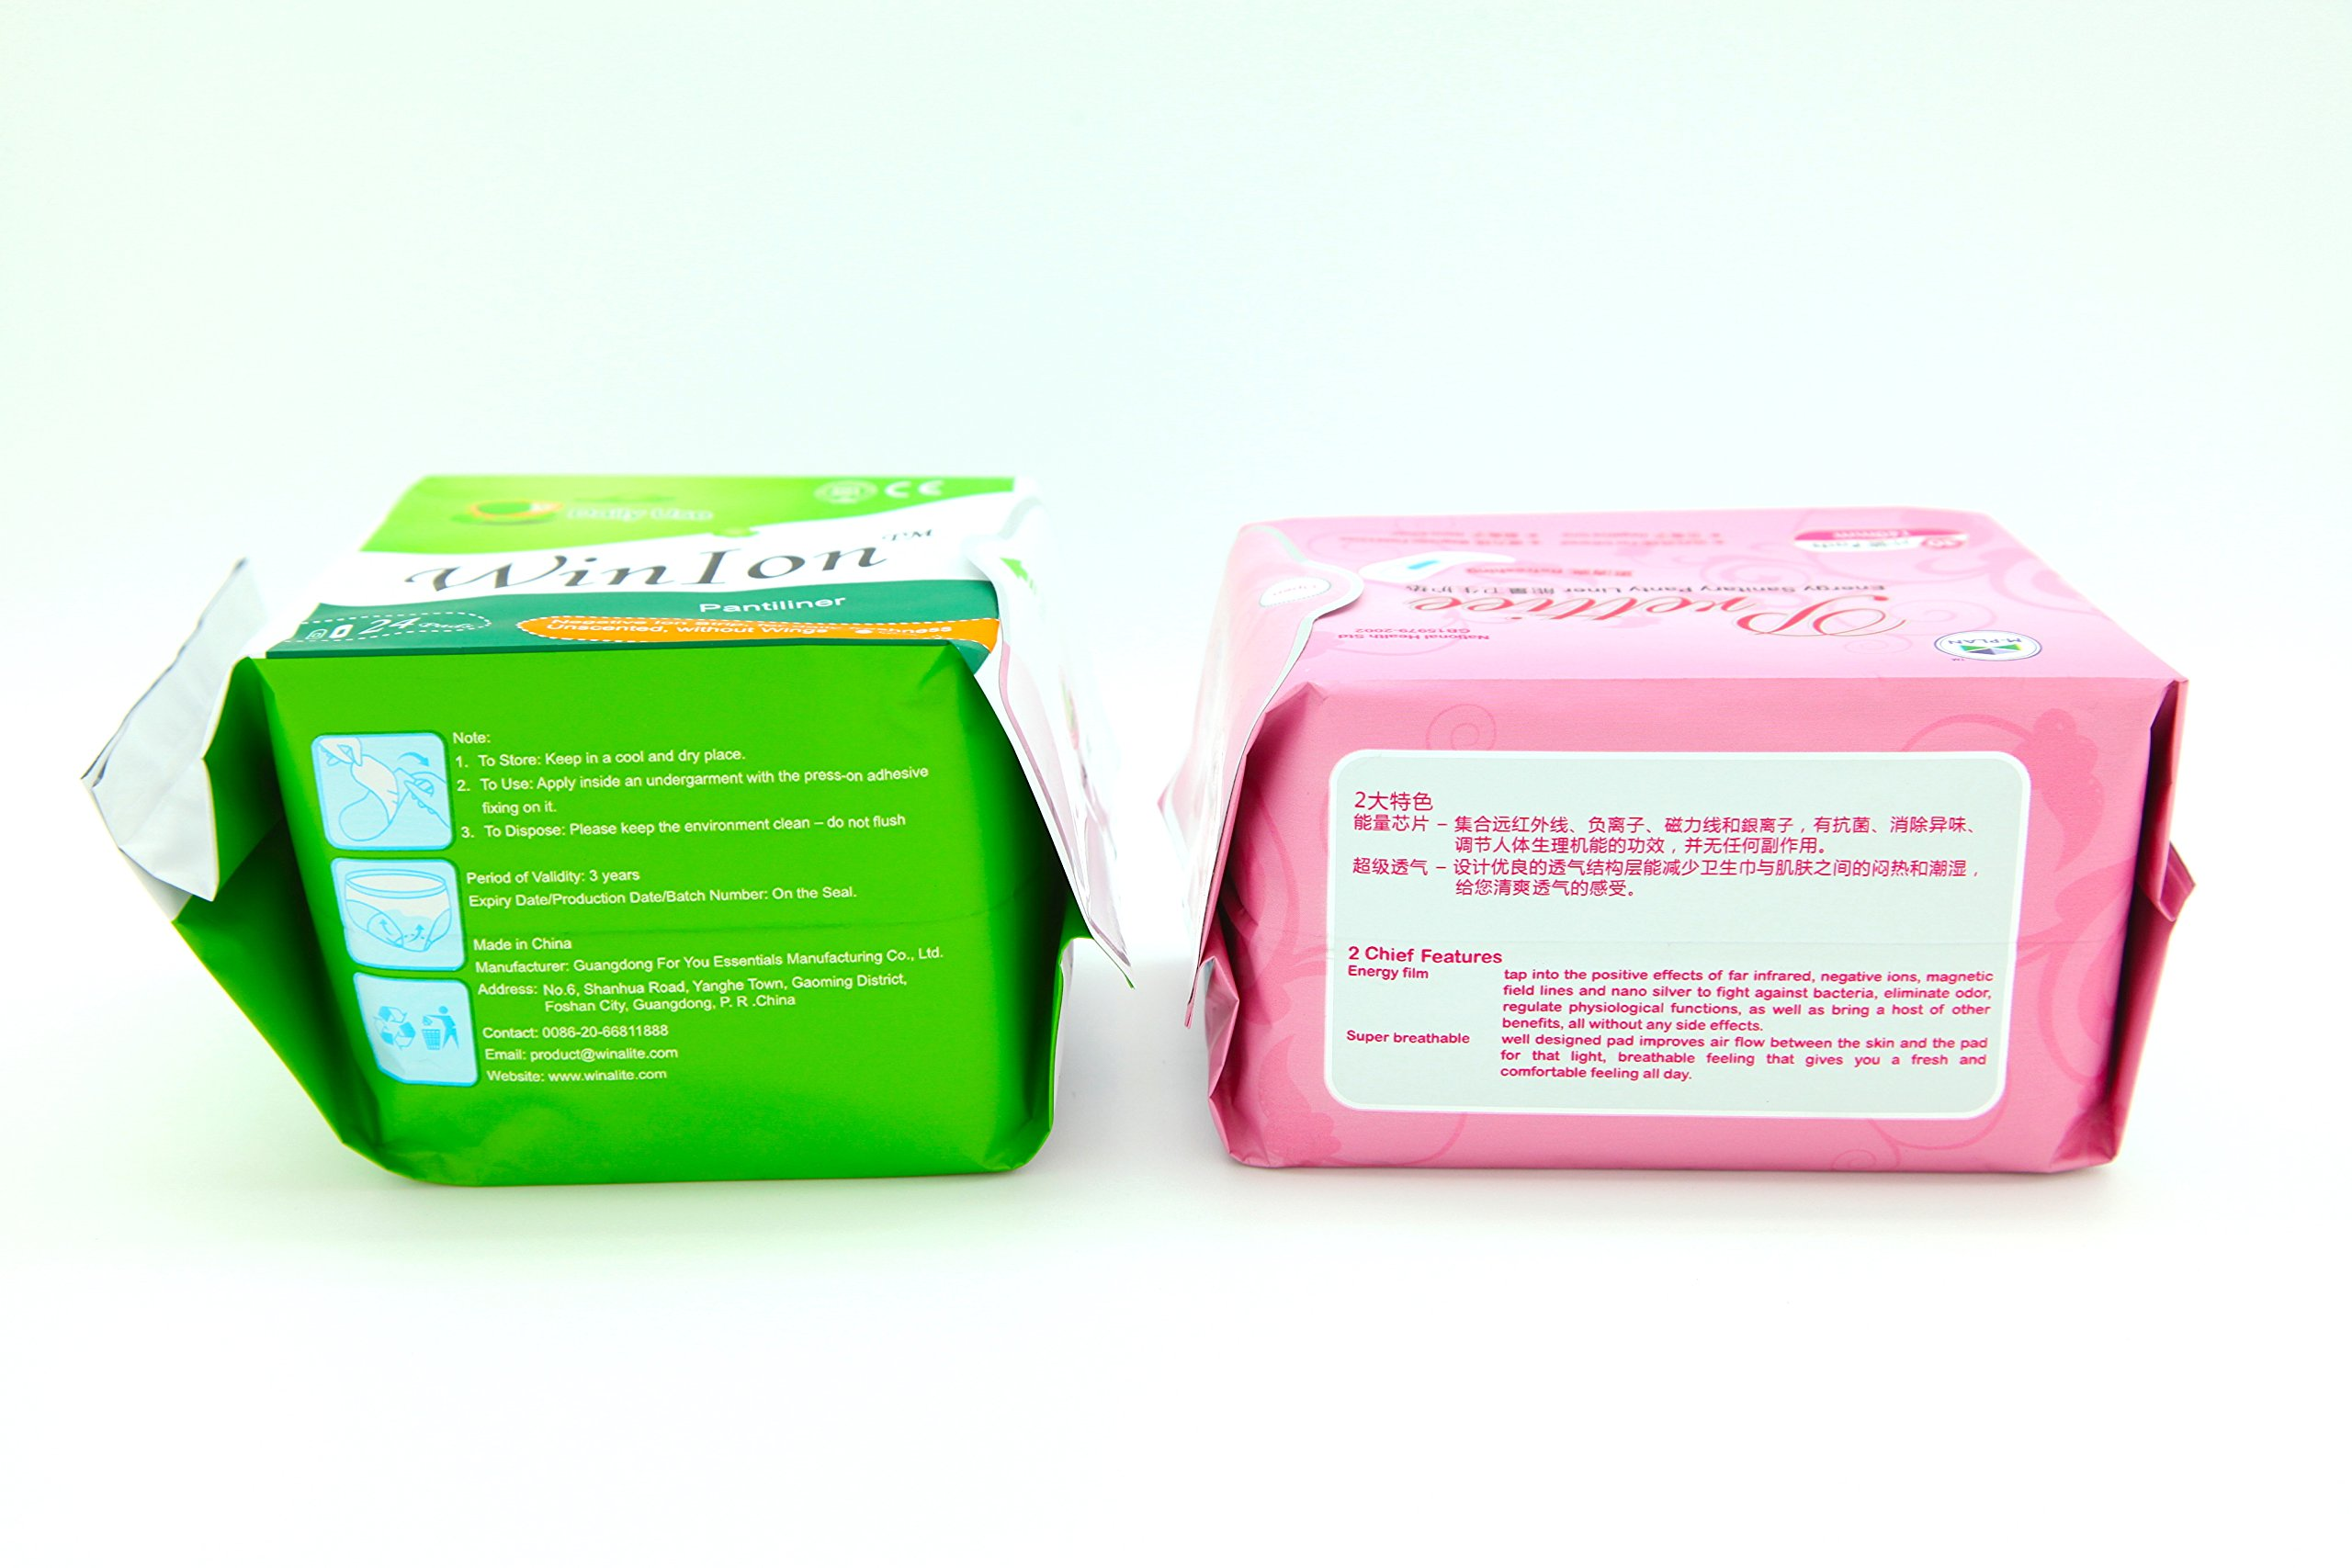 5 Pack Winalite Winion Anion Pantiliner With 5 Pack Prettie Energy Sanitary Panty Liner by Winalite (Image #3)